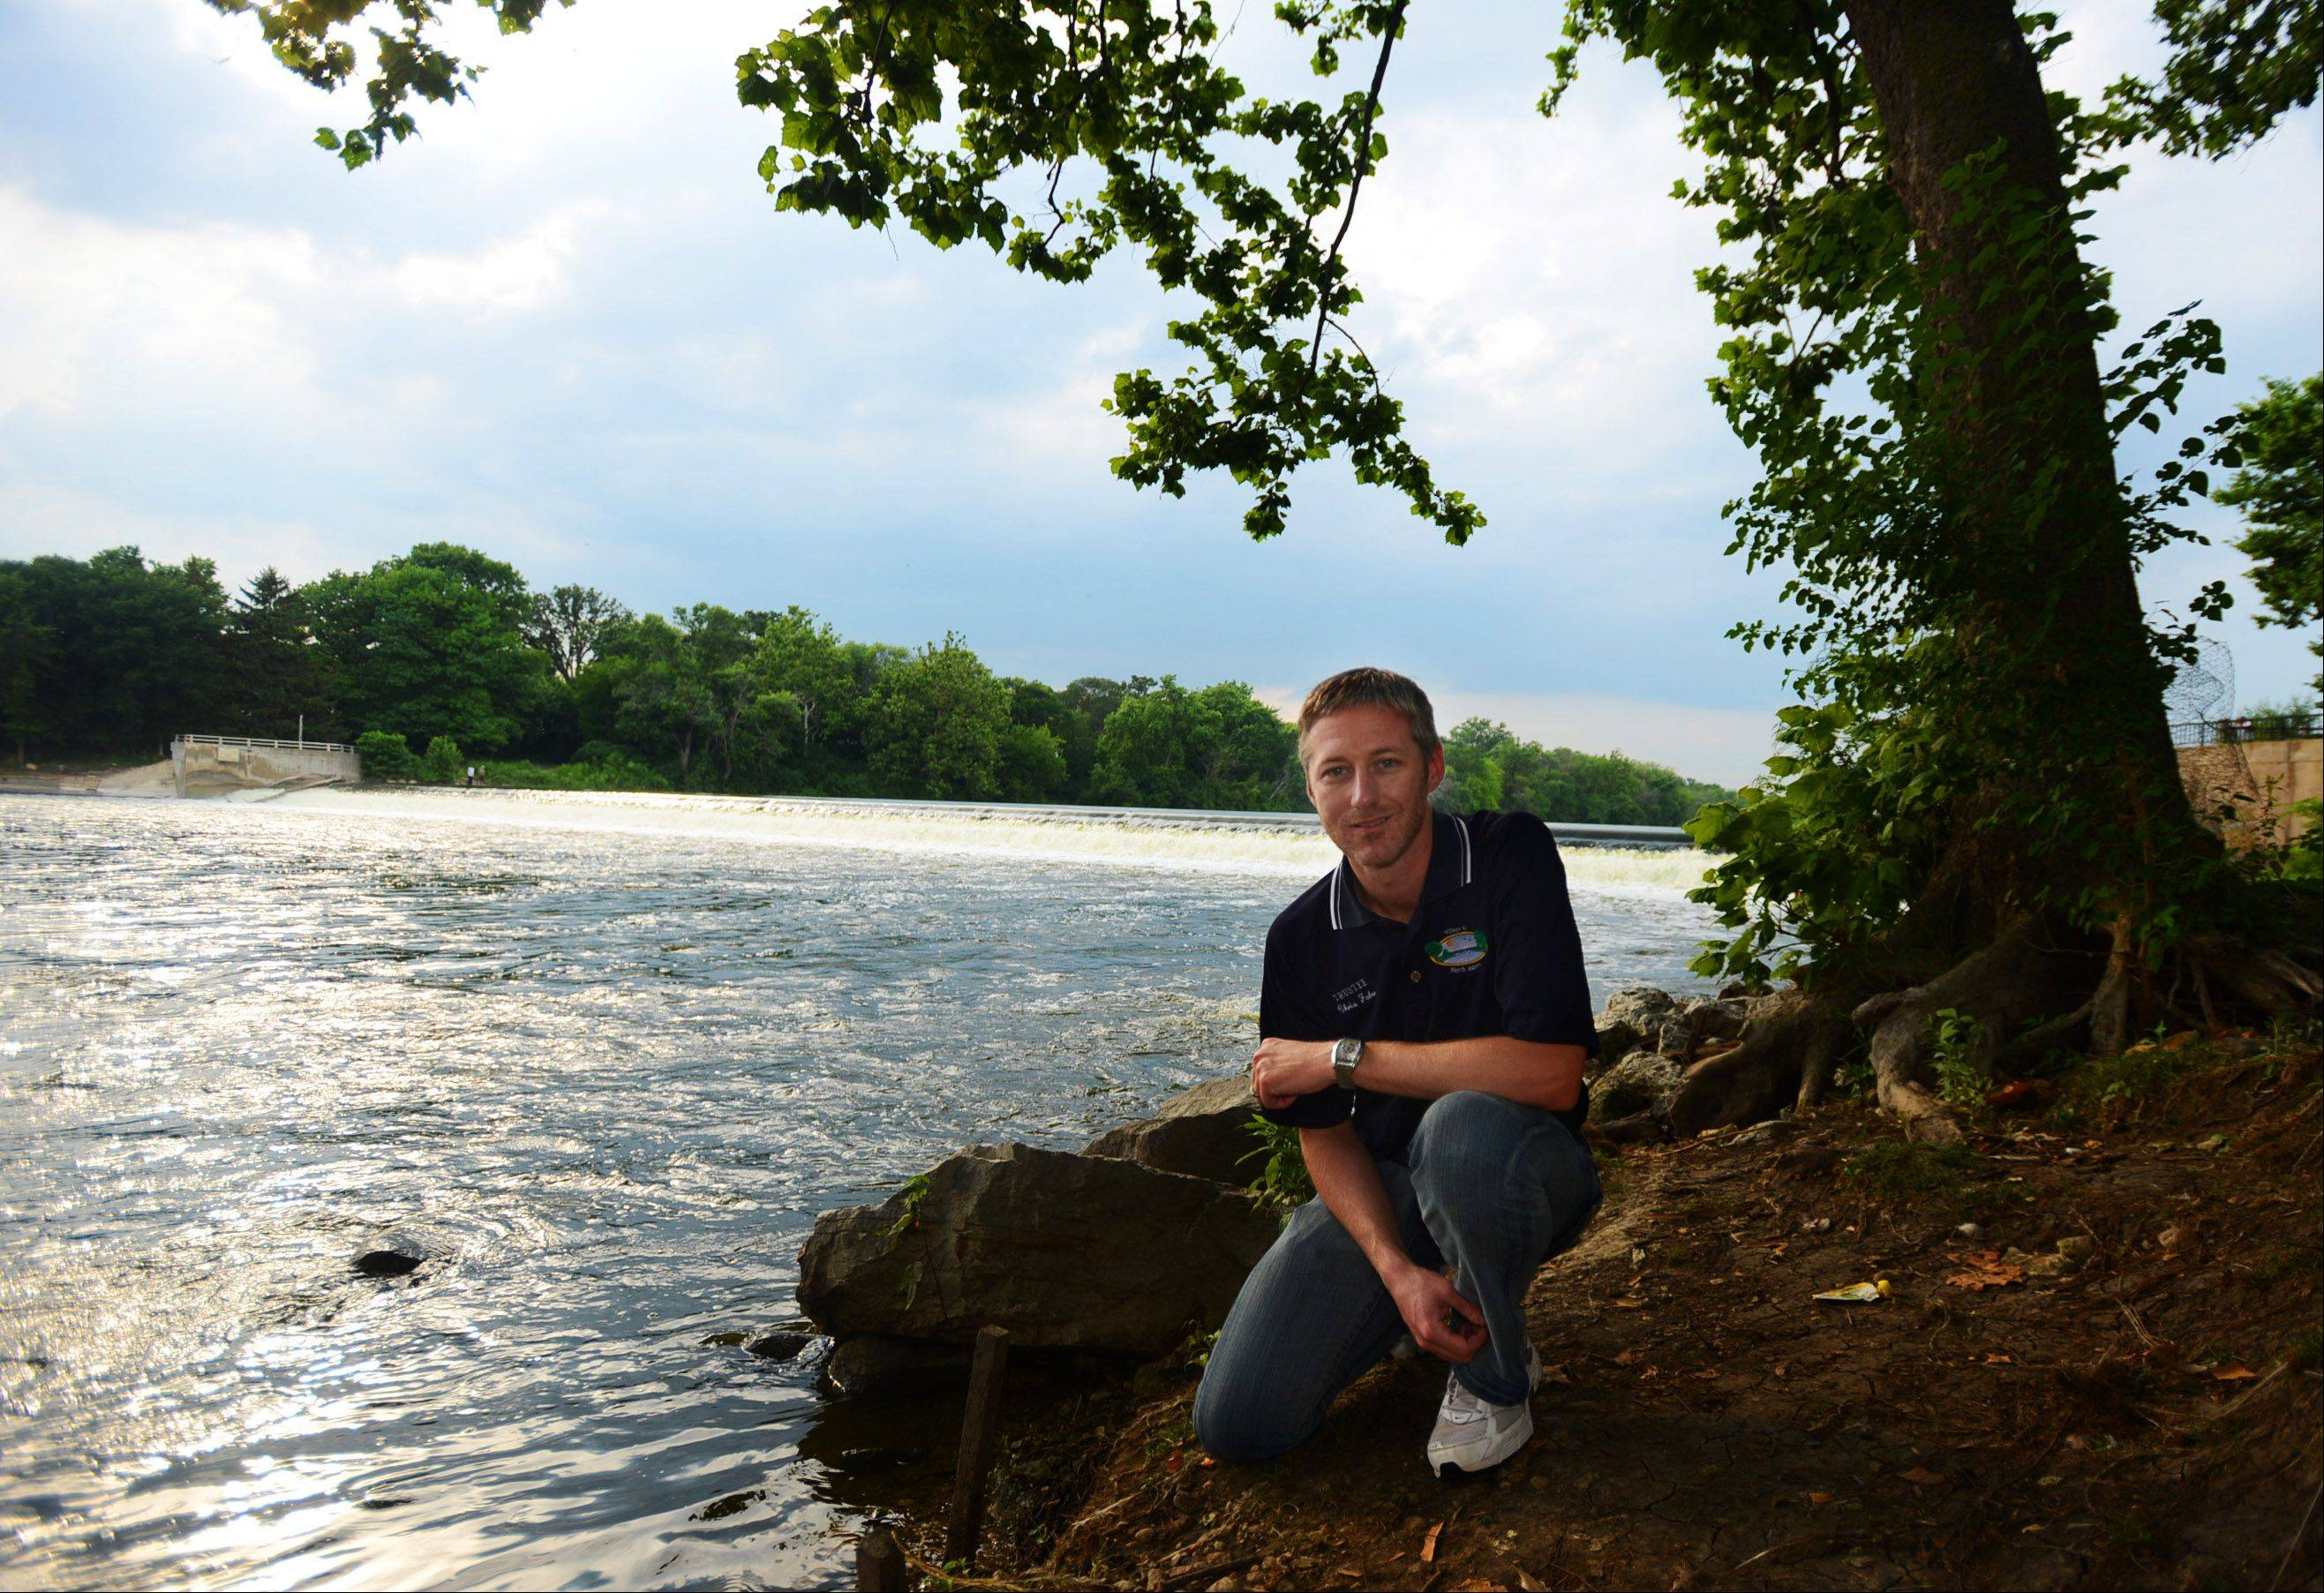 North Aurora Trustee Chris Faber says his town sees the potential of the Fox River, although much of it is hidden behind shops facing Route 31.